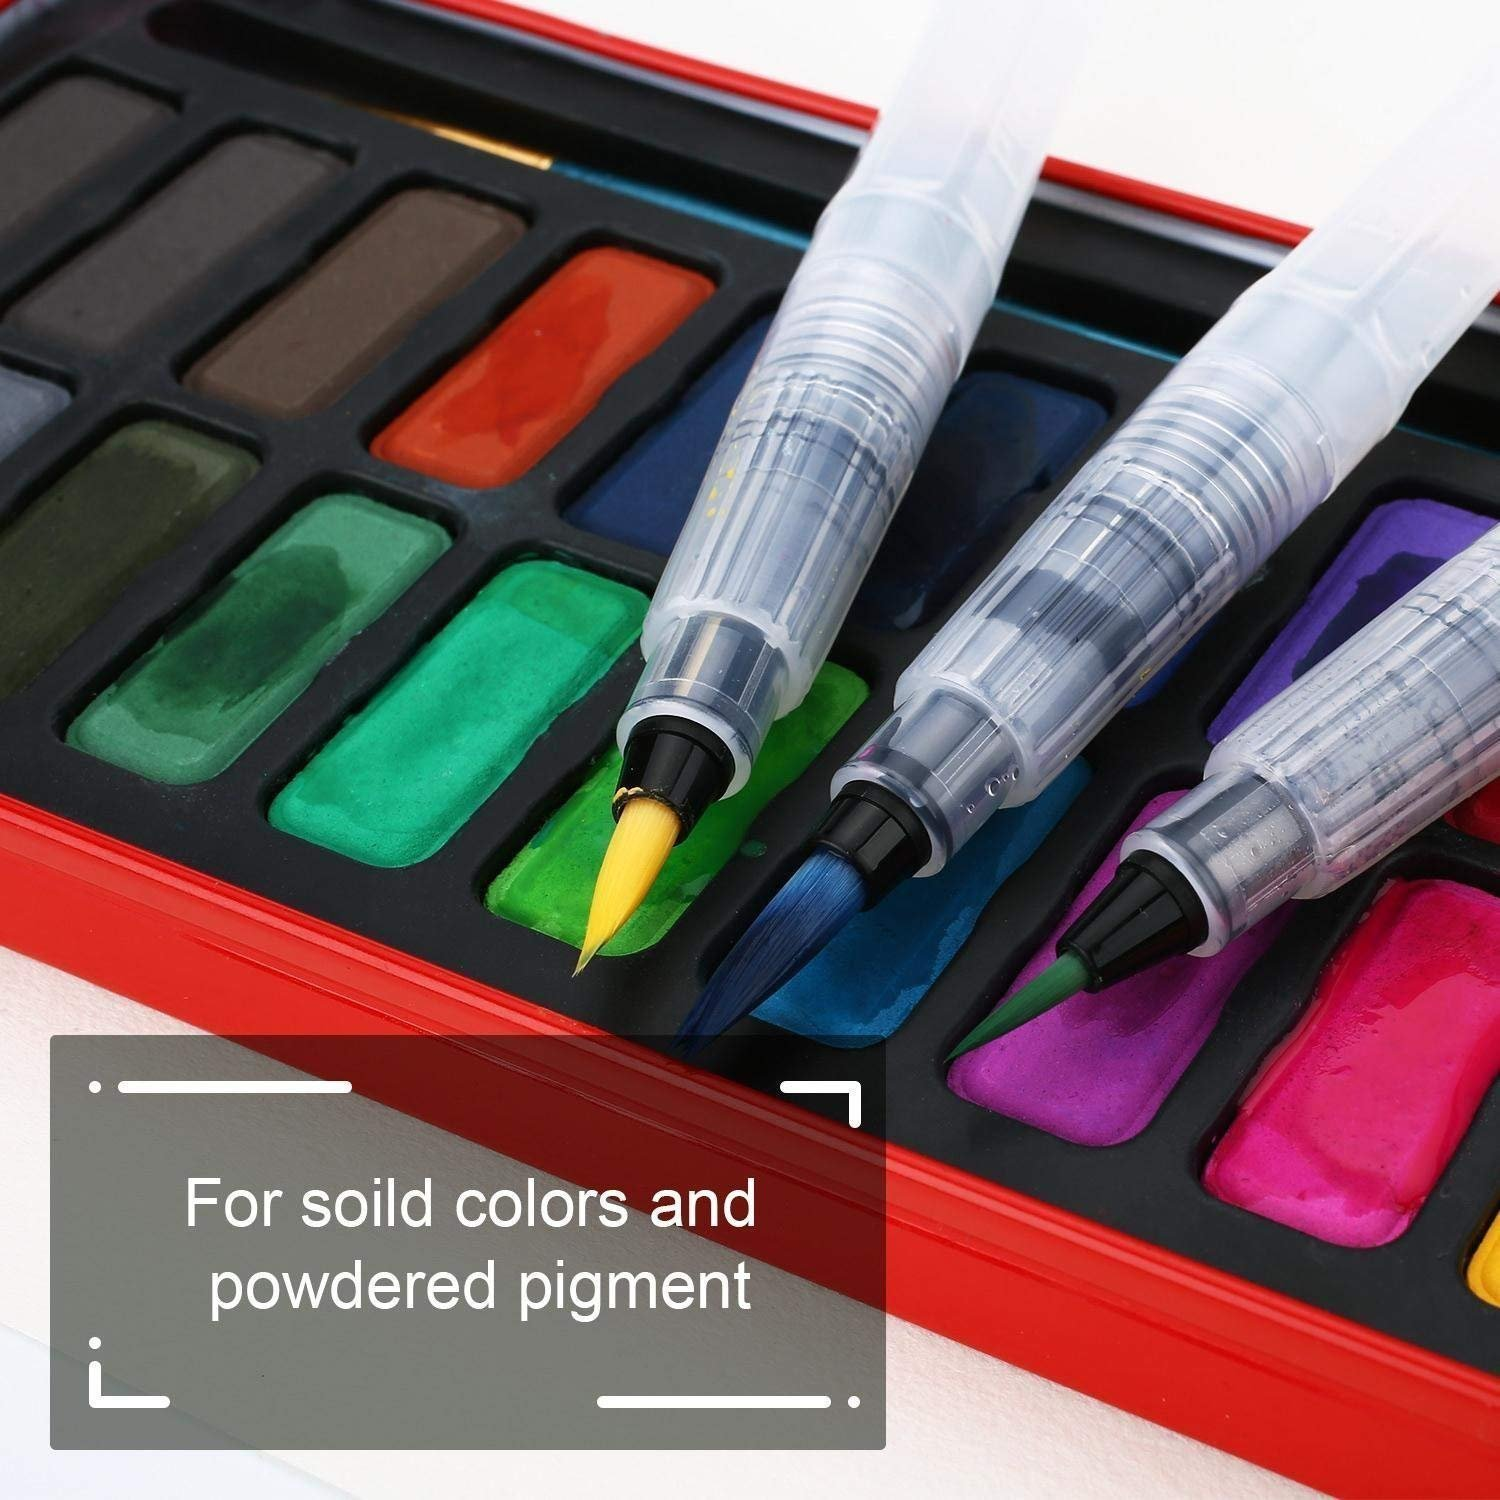 Ciaoed Water Coloring Brush Pens,Set of 6 Brush Tips and a Paint Tray Palette for Watercolor Painting,Water Soluble Pencils, Solid Colors and Powdered Pigment